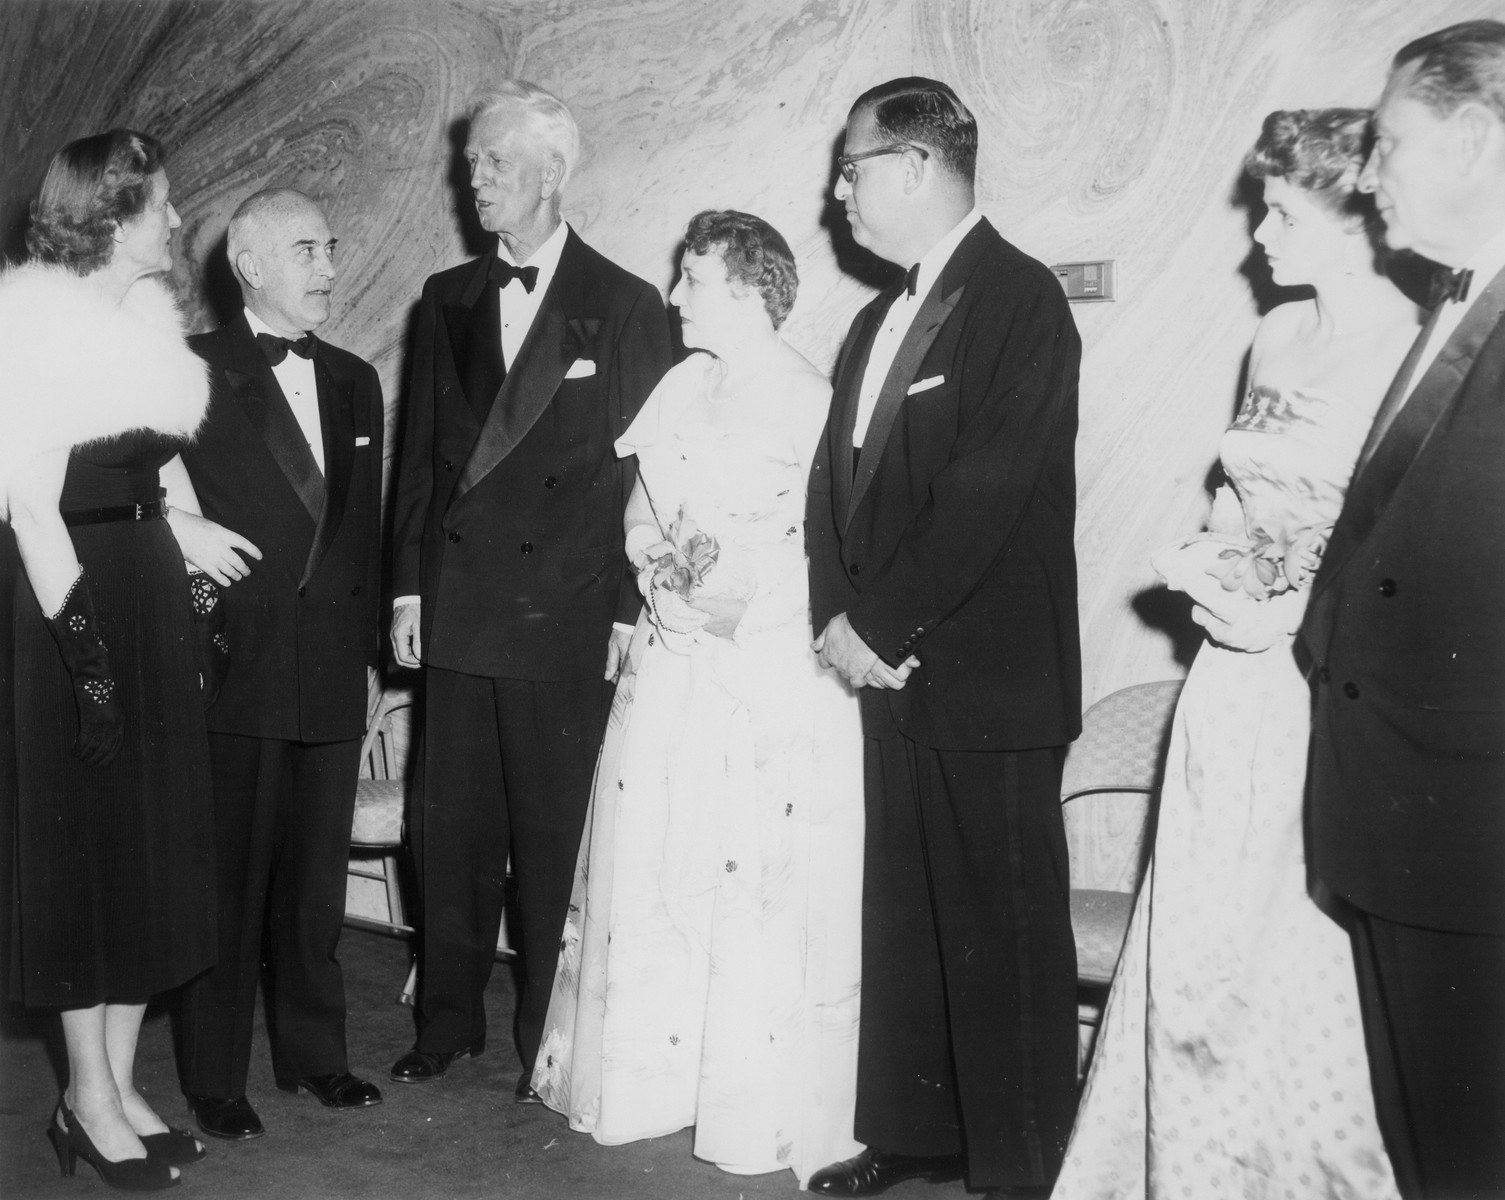 Israeli ambassador to the U.S. Abba Eban attends an affair in Washington, D.C.  Pictured from left to right are: unknown, unknown, James G. McDonald, Mrs. John Safer, Abba Eban, Mrs. Eban, and Abraham S. Kay.